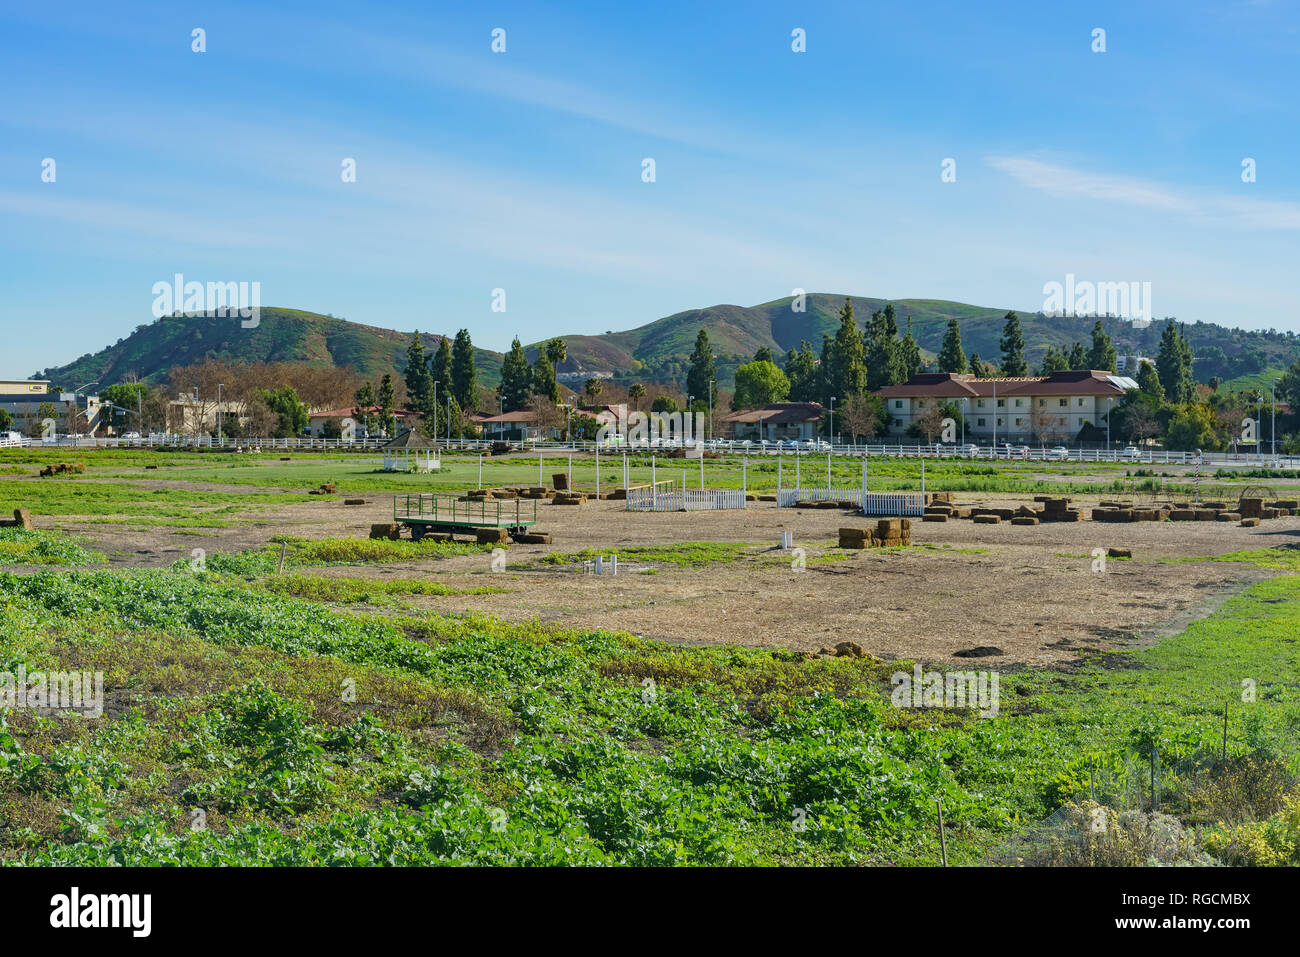 Exterior view of a farm of Cal Poly Pomona at Los Angeles County, California - Stock Image